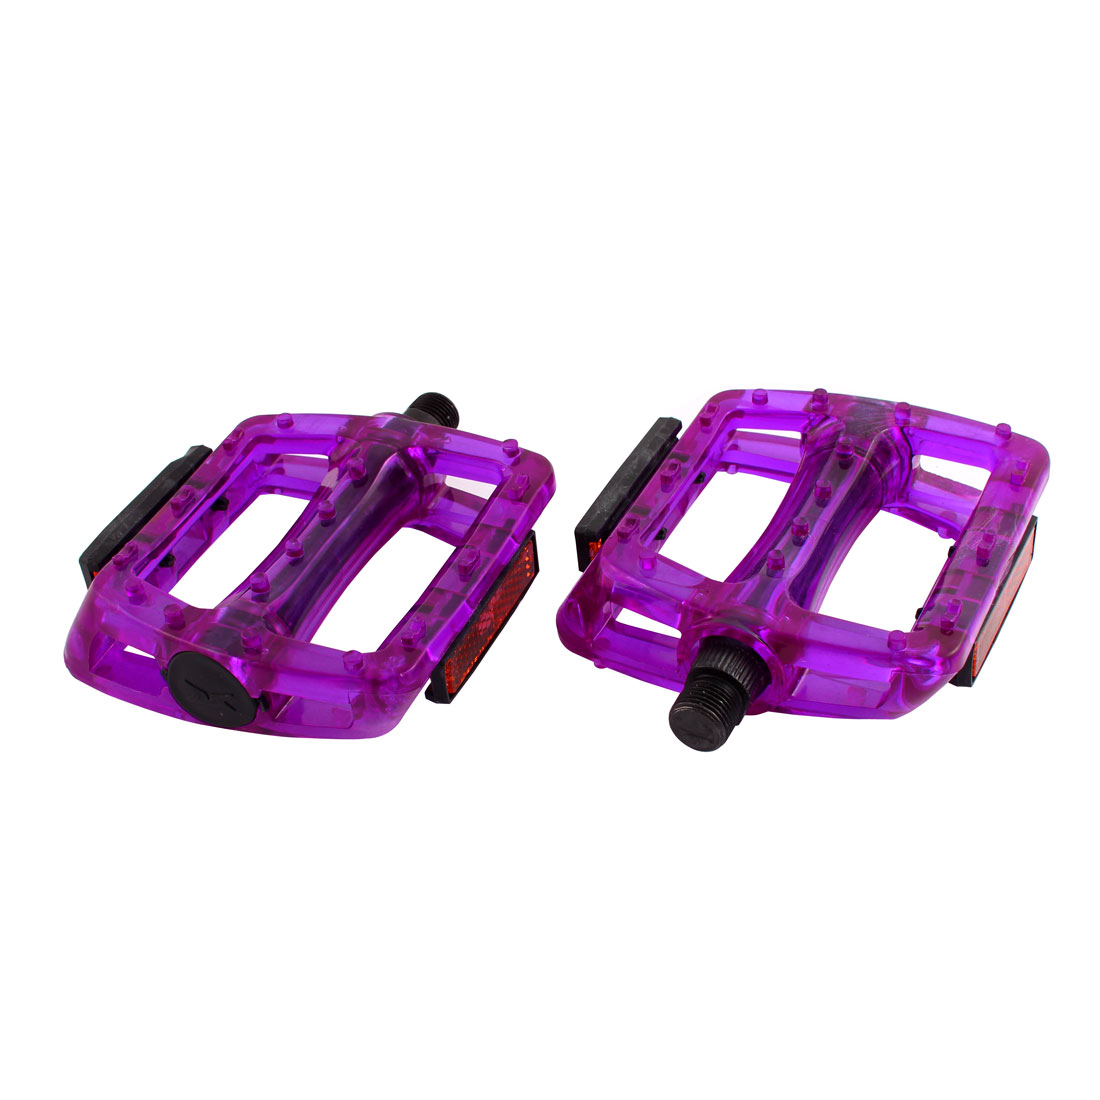 Purple Fixed Gear Bike Bicycle Fuchsia Rectangle Foot Plate Platform Pedal Pair